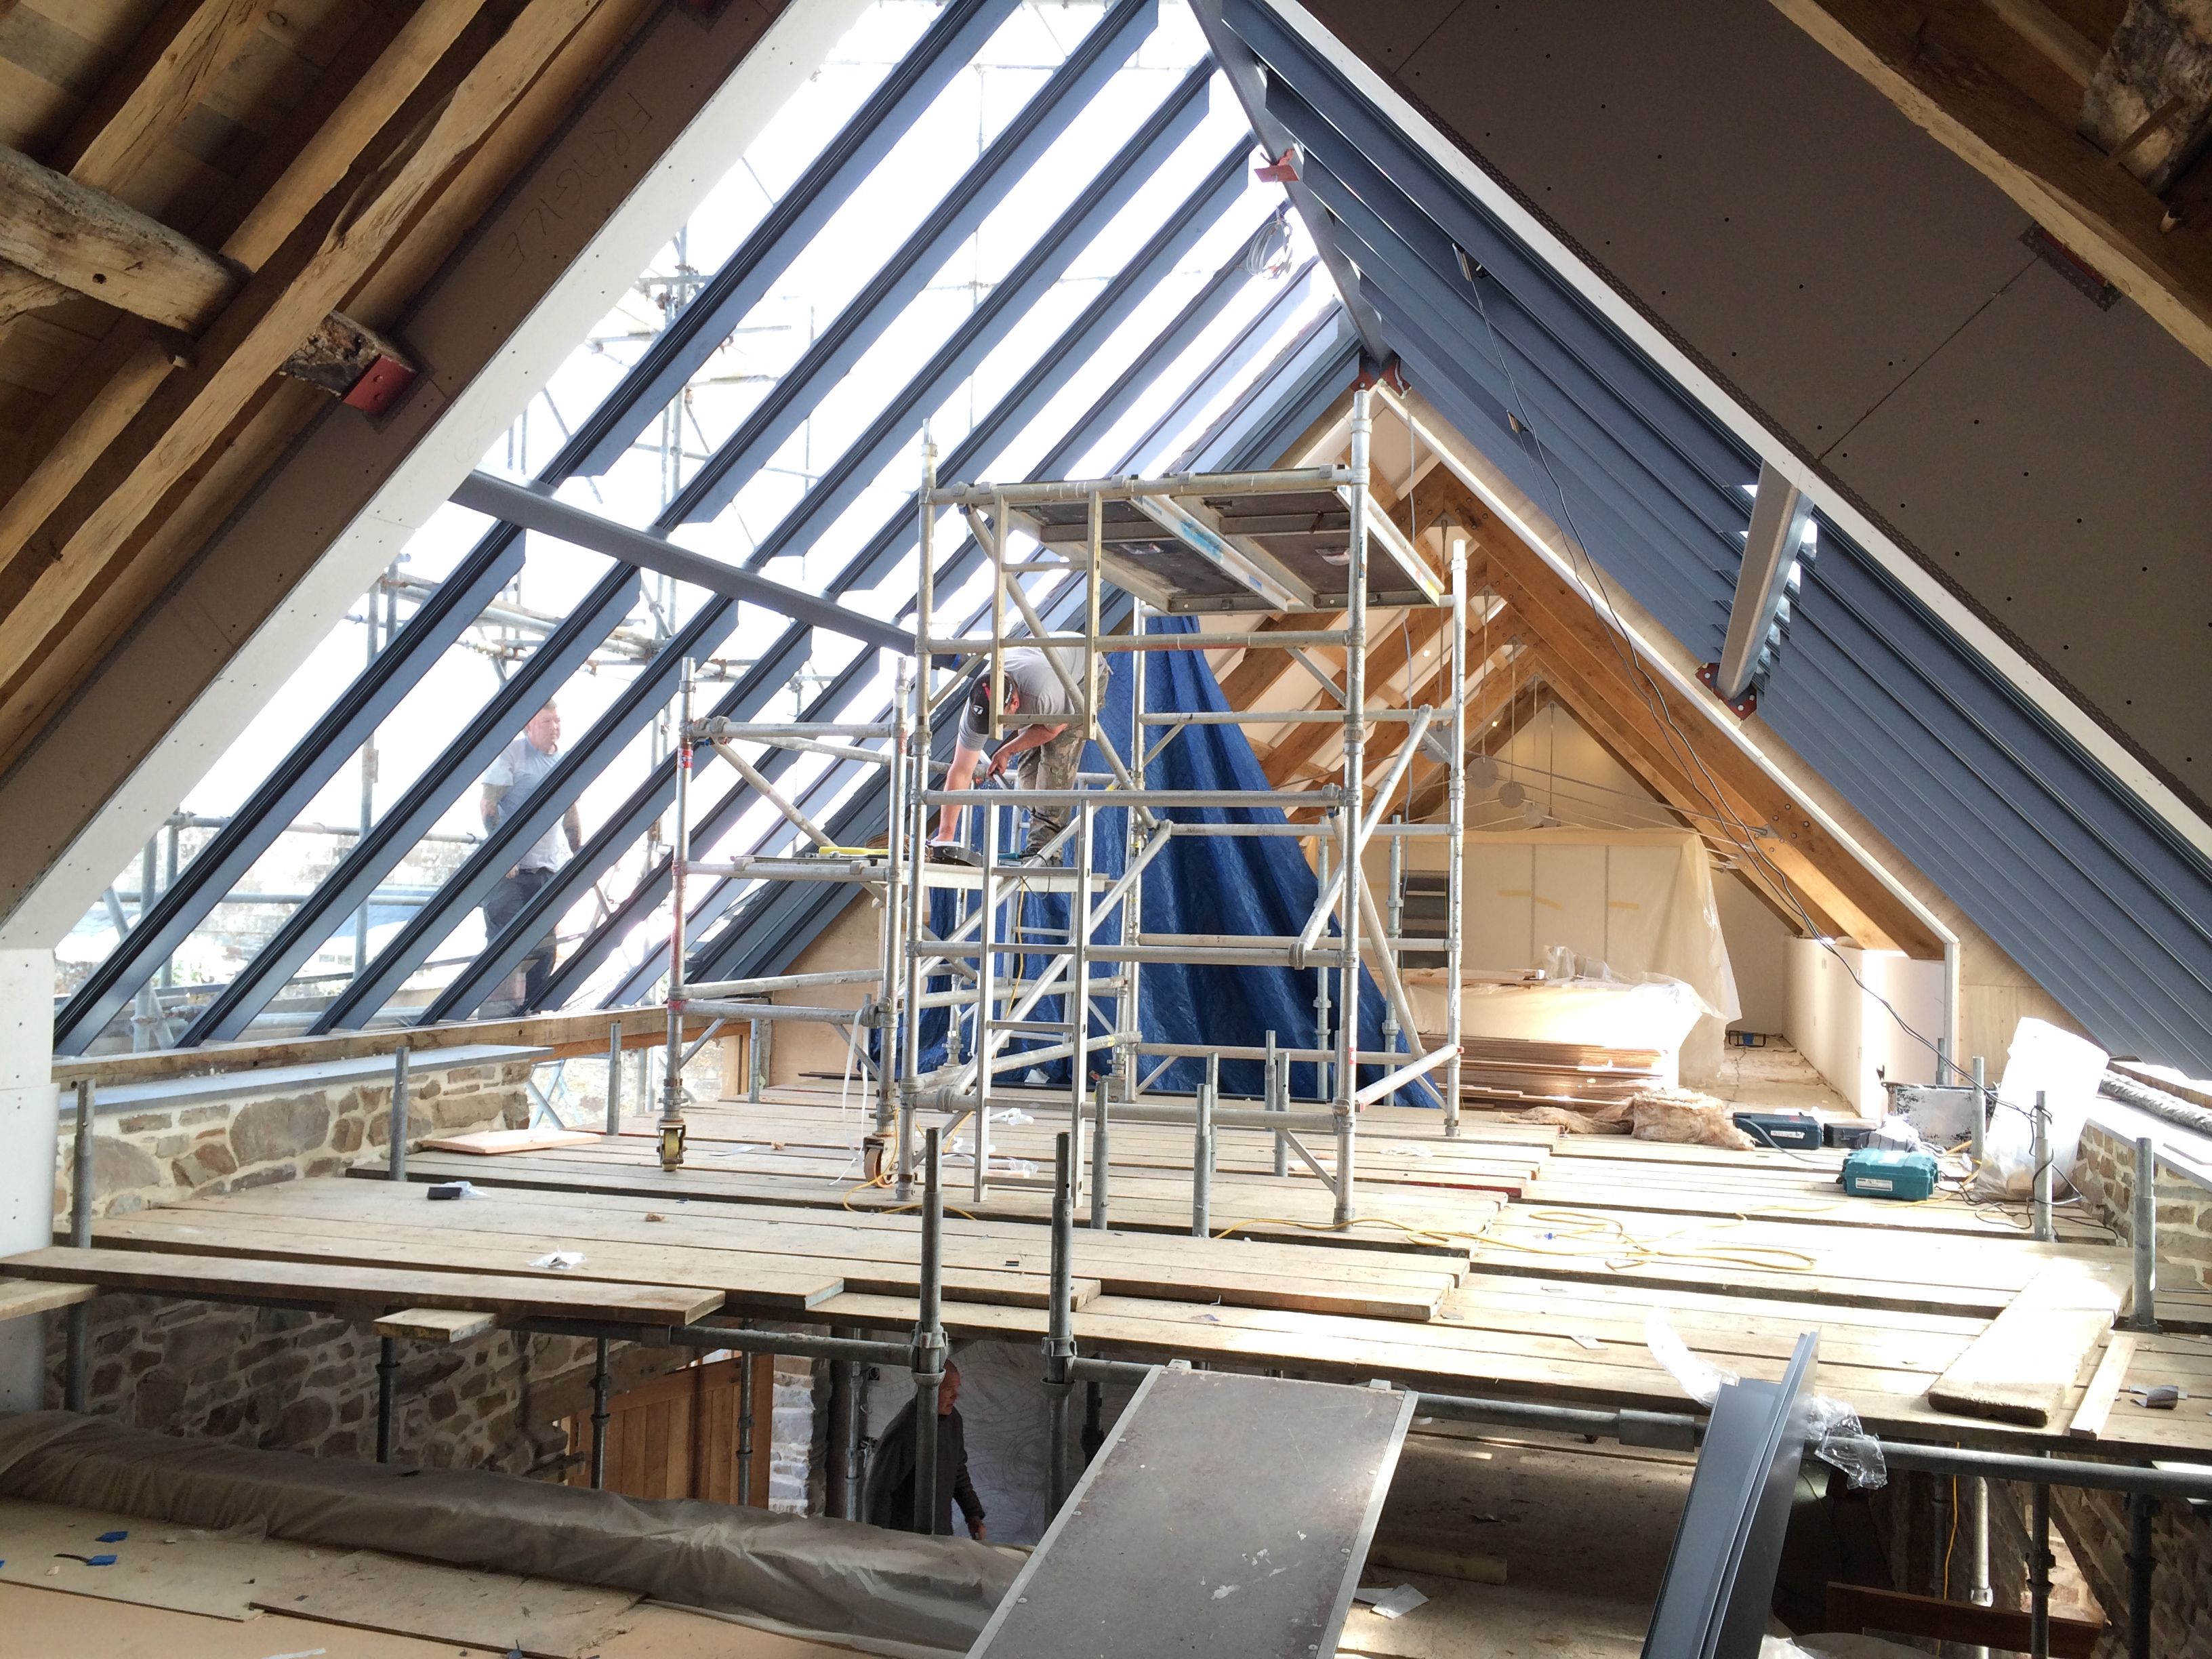 Maer Barn Conversion under Construction by The Bazeley Partnership Architects in Cornwall